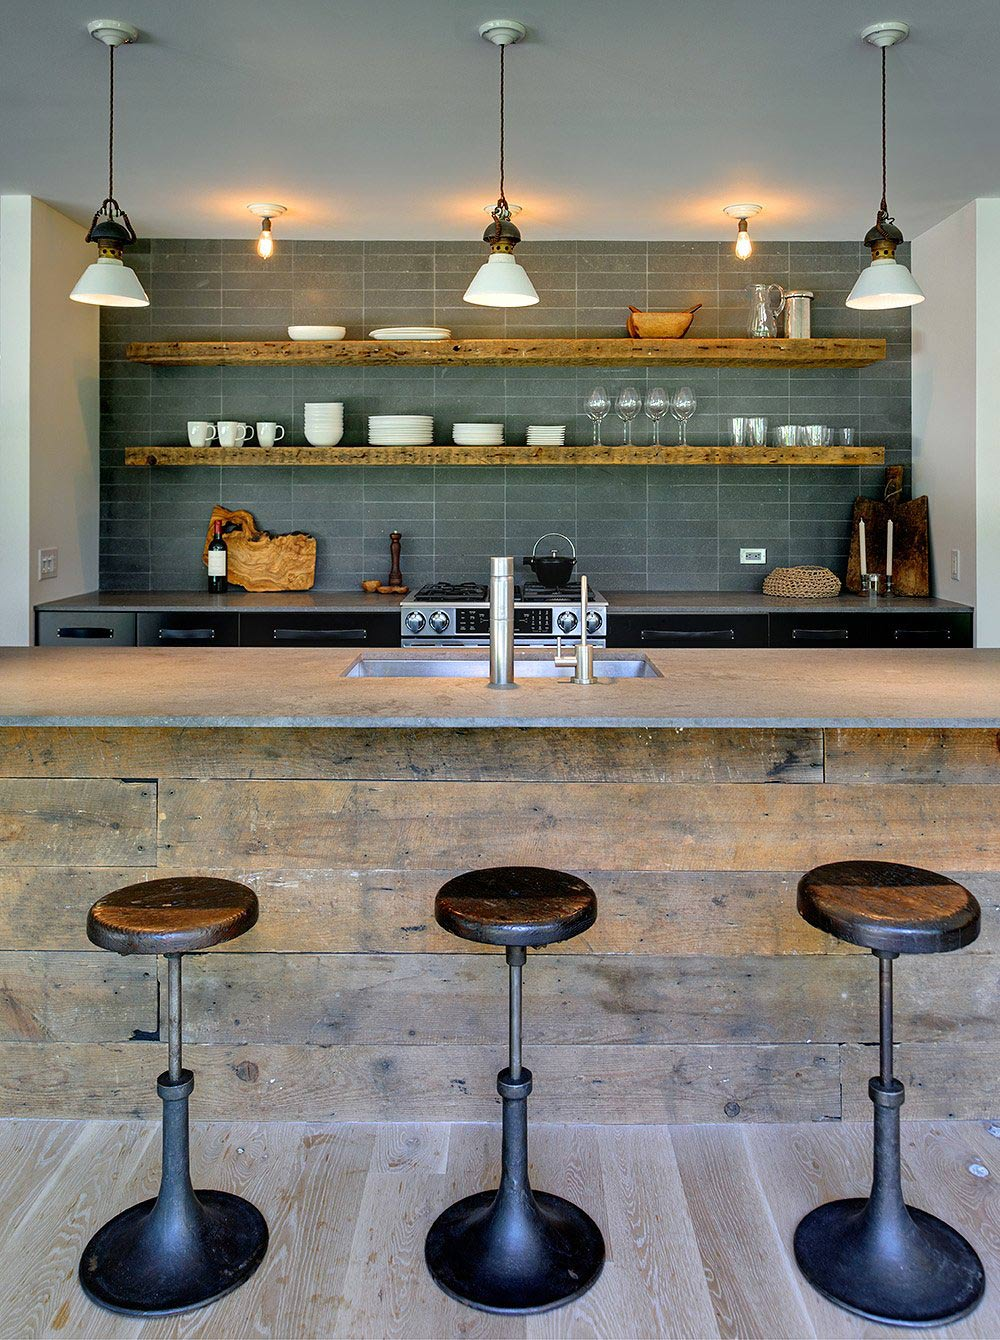 Rustic Kitchen, Breakfast Bar, Robins Way Residence in Amagasett, New York by Bates Masi Architects